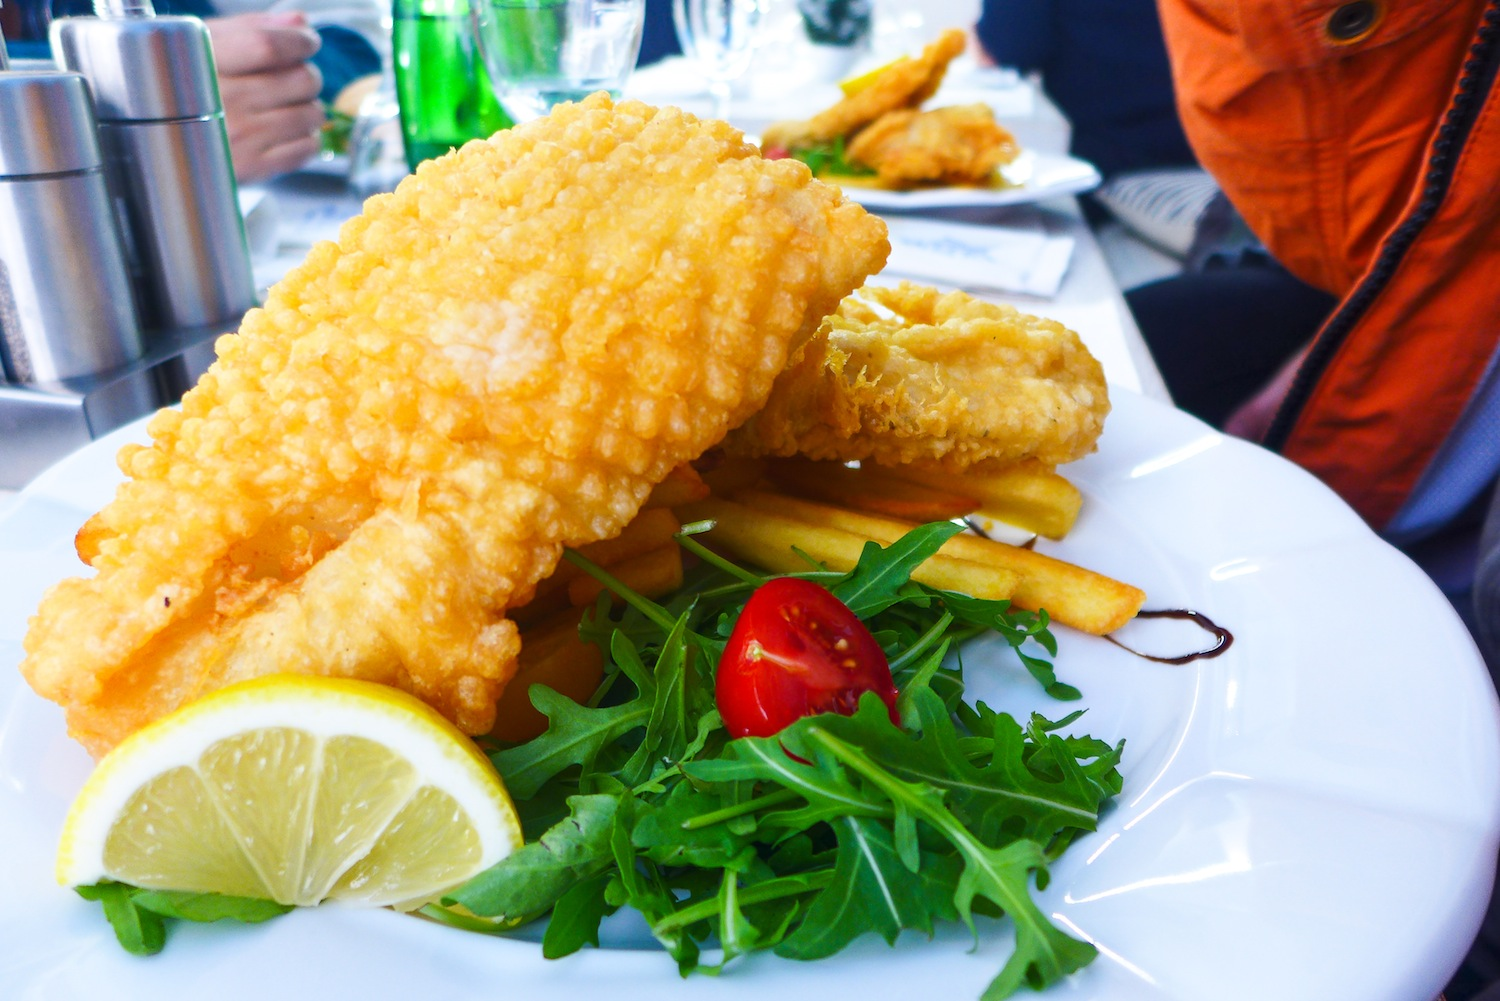 Fish 'n' Chips (CZK 185)